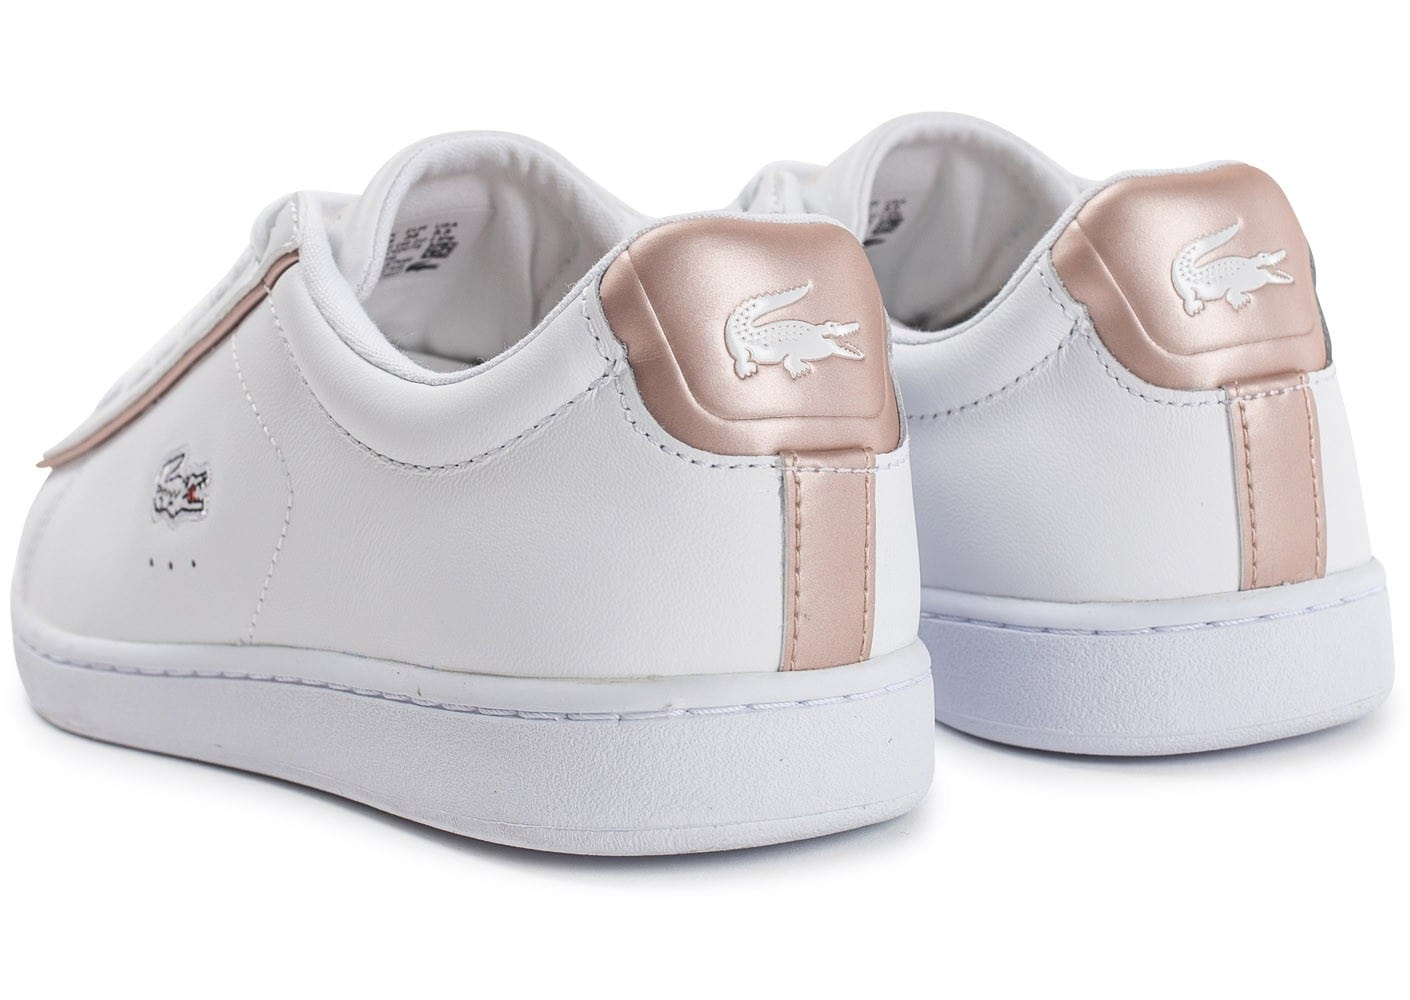 b4f68fb02a5 Lacoste Carnaby Evo 417 SPW blanche - Chaussures Baskets femme - Chausport  Chaussures Femme Baskets basses Lacoste CARNABY EVO BL 1 Noir Chaussures  Femme ...